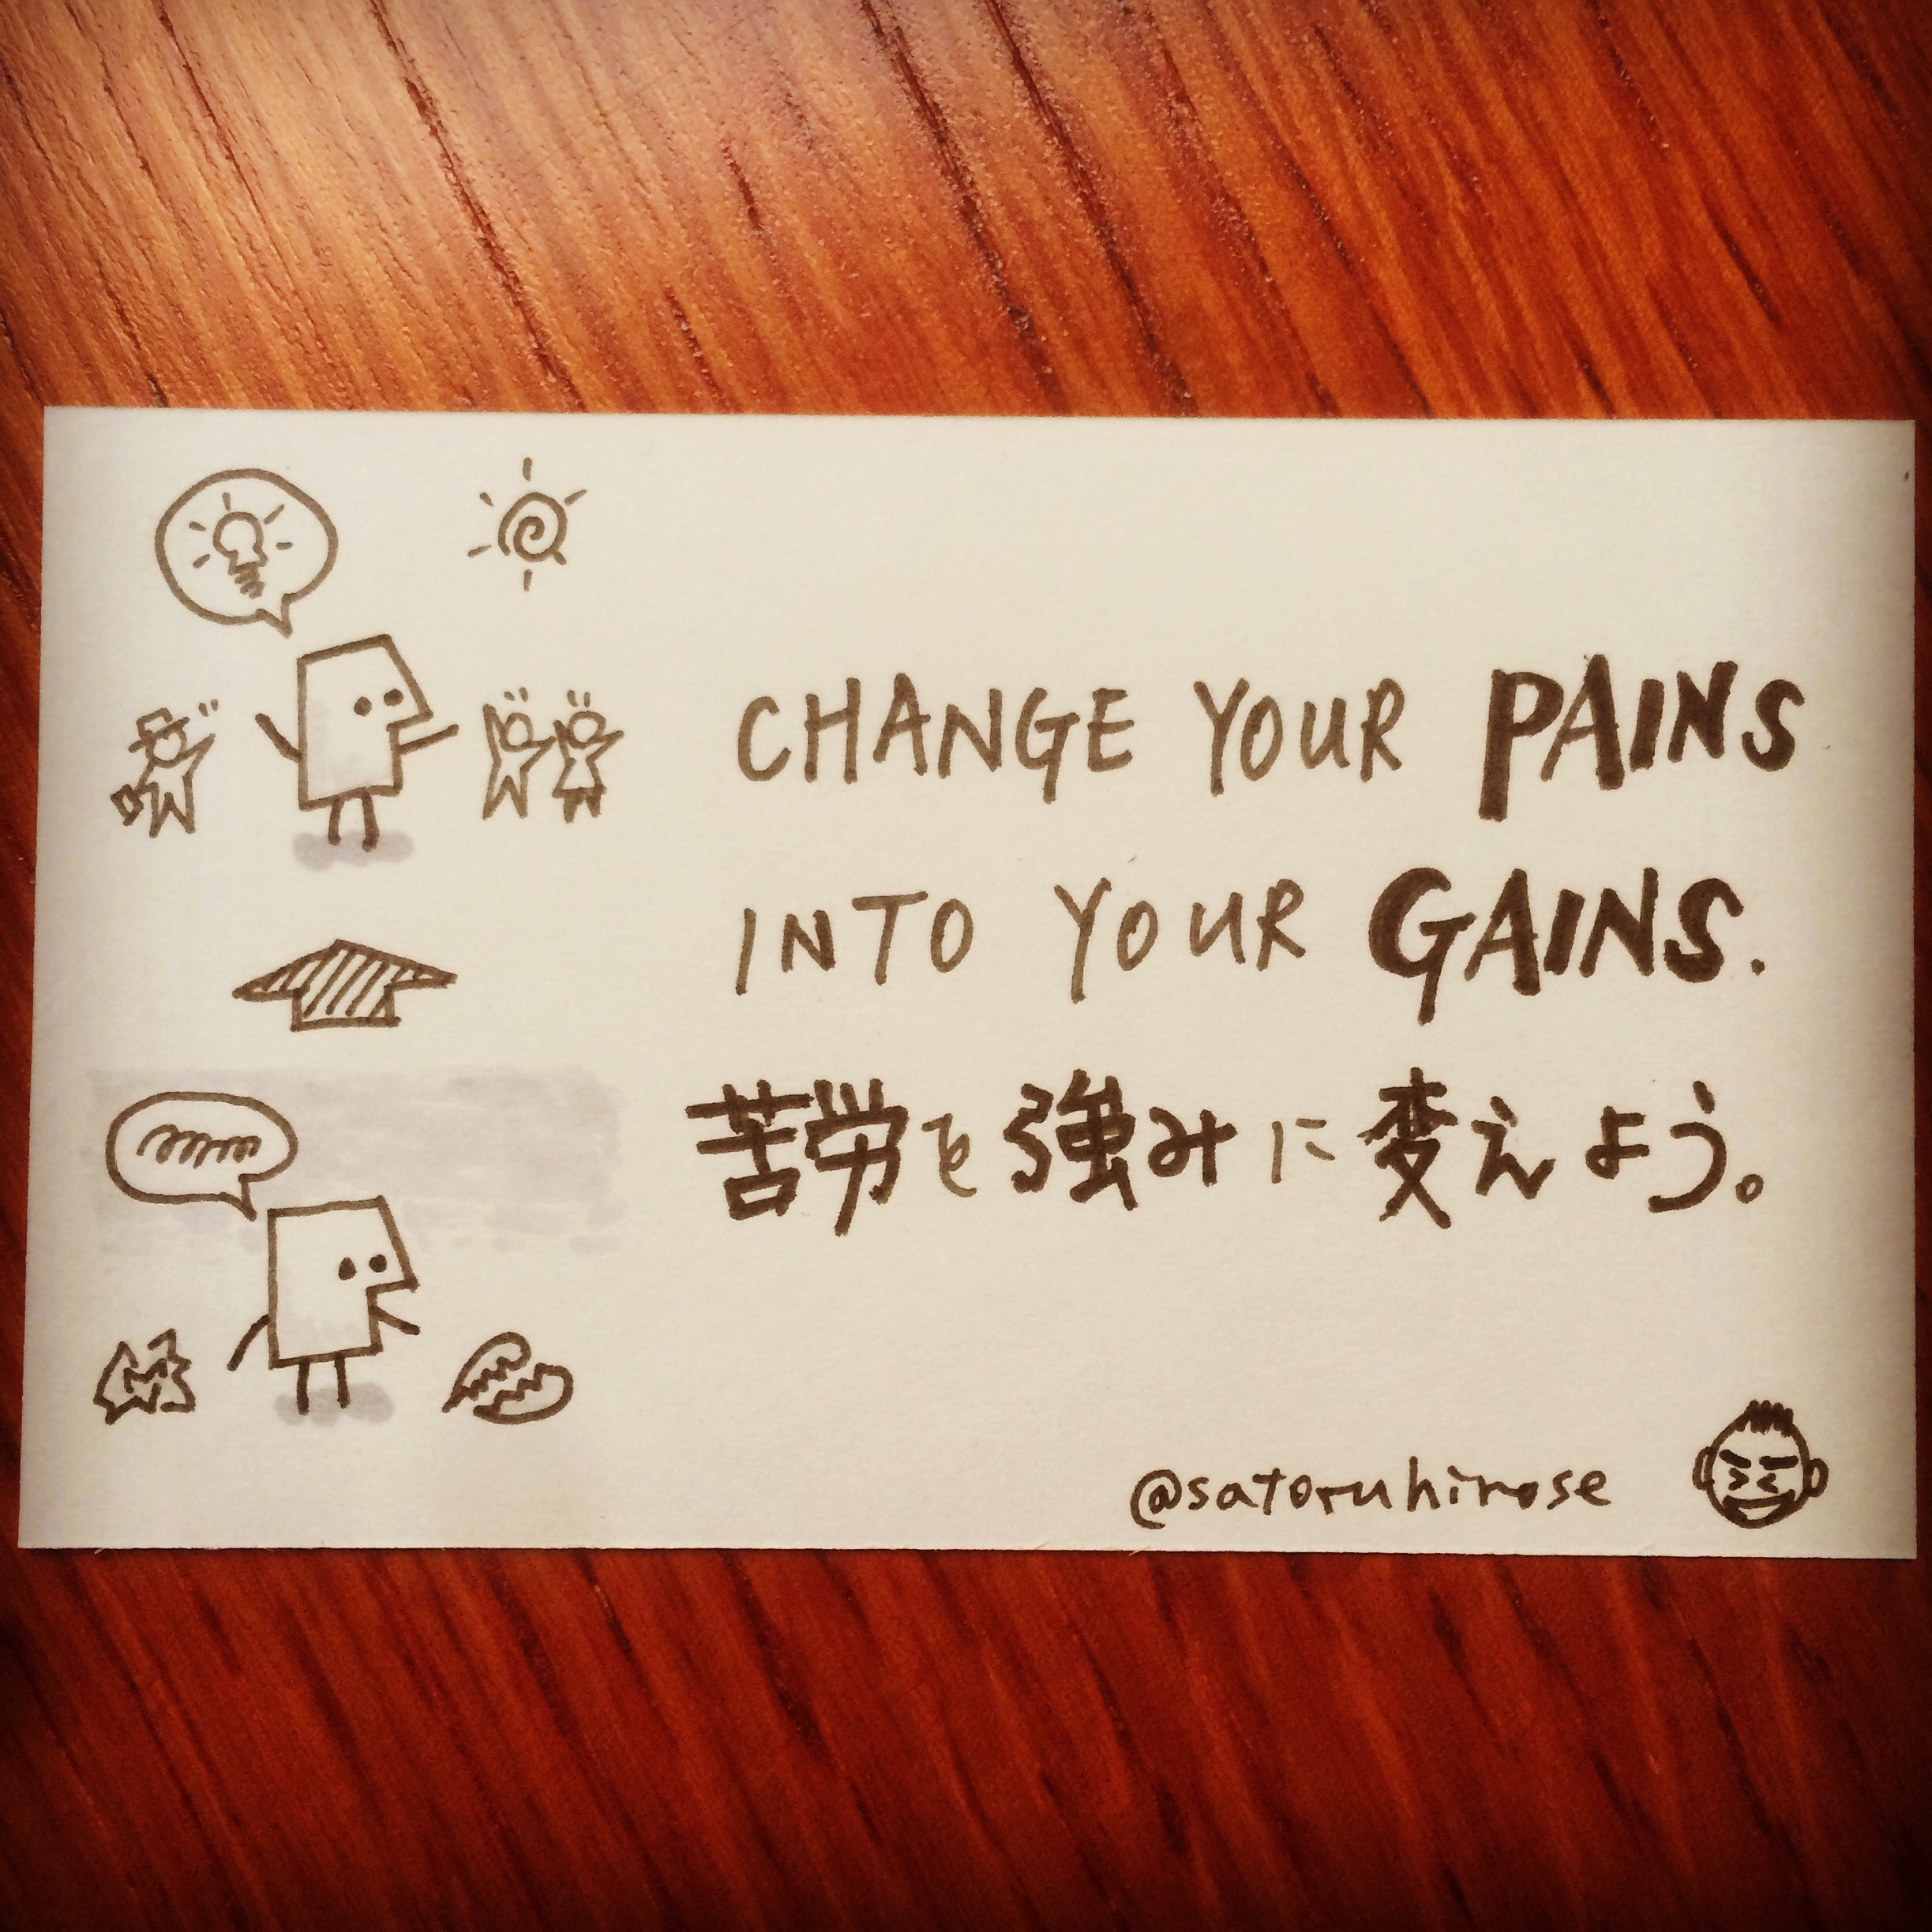 Change your pains into your gains.